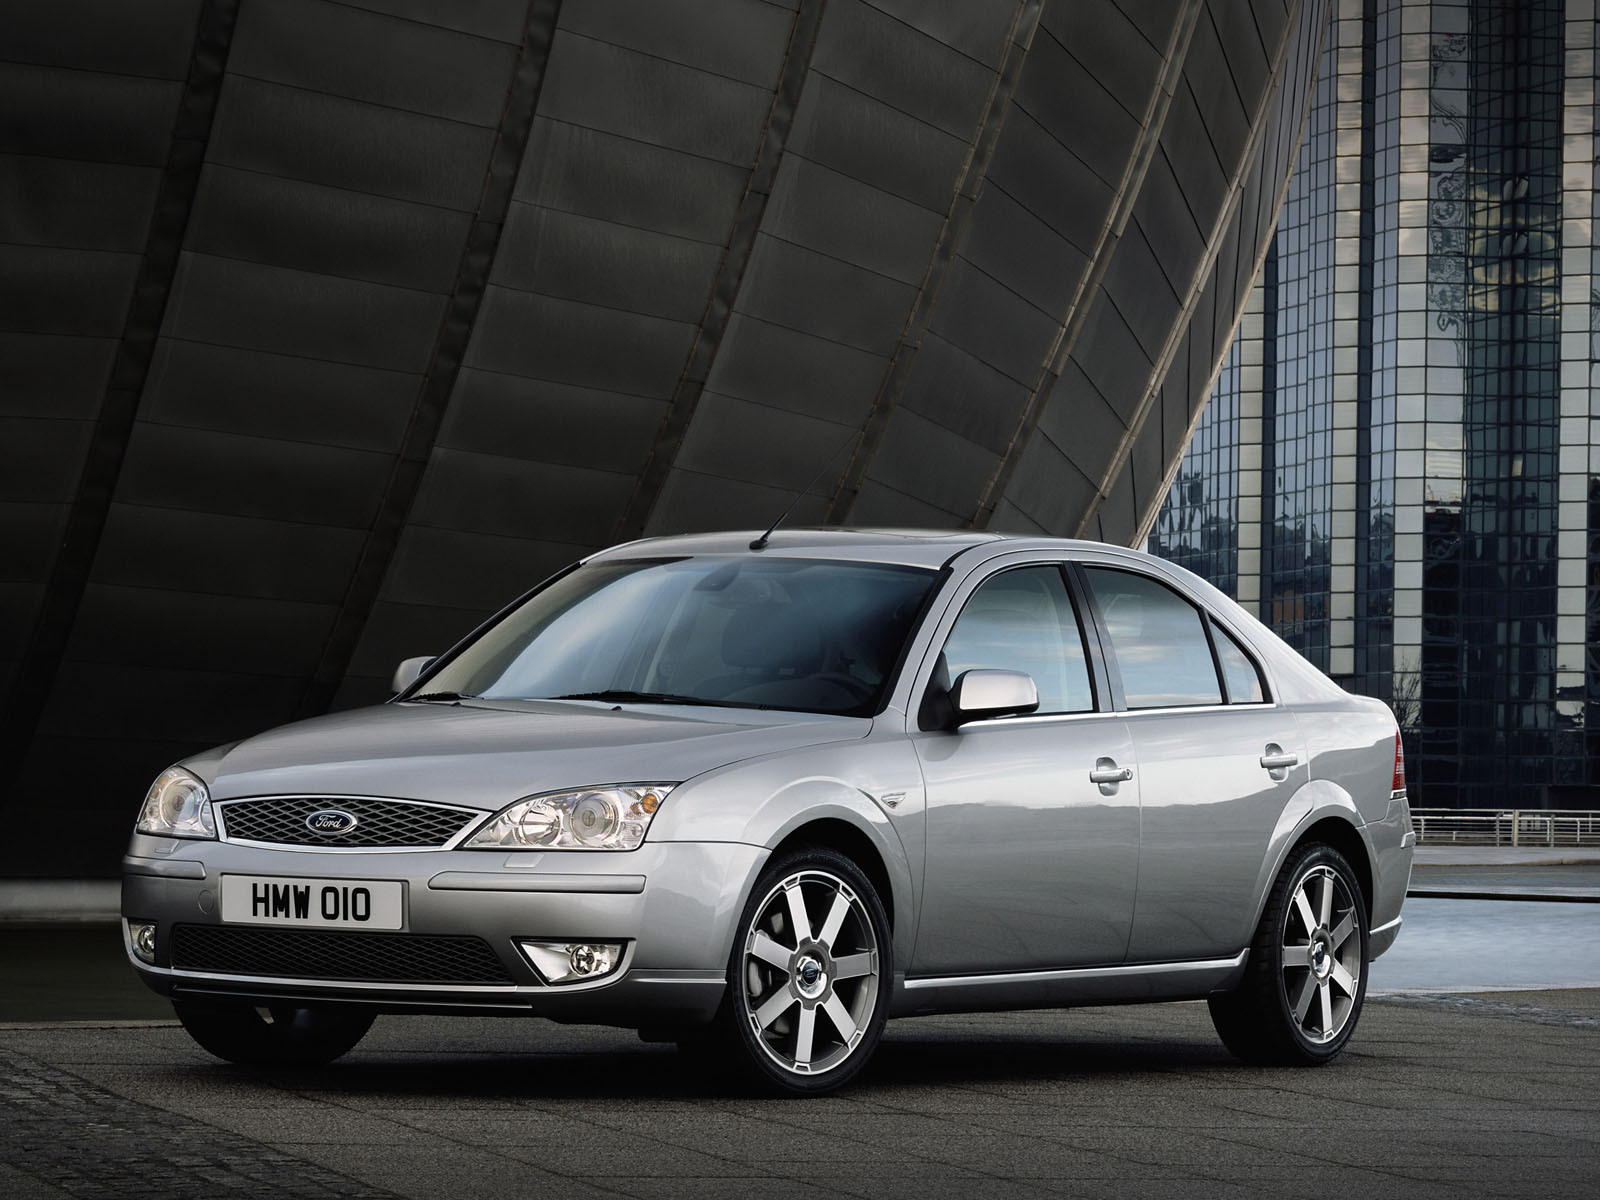 Ford Mondeo 2.2 2005 photo - 1